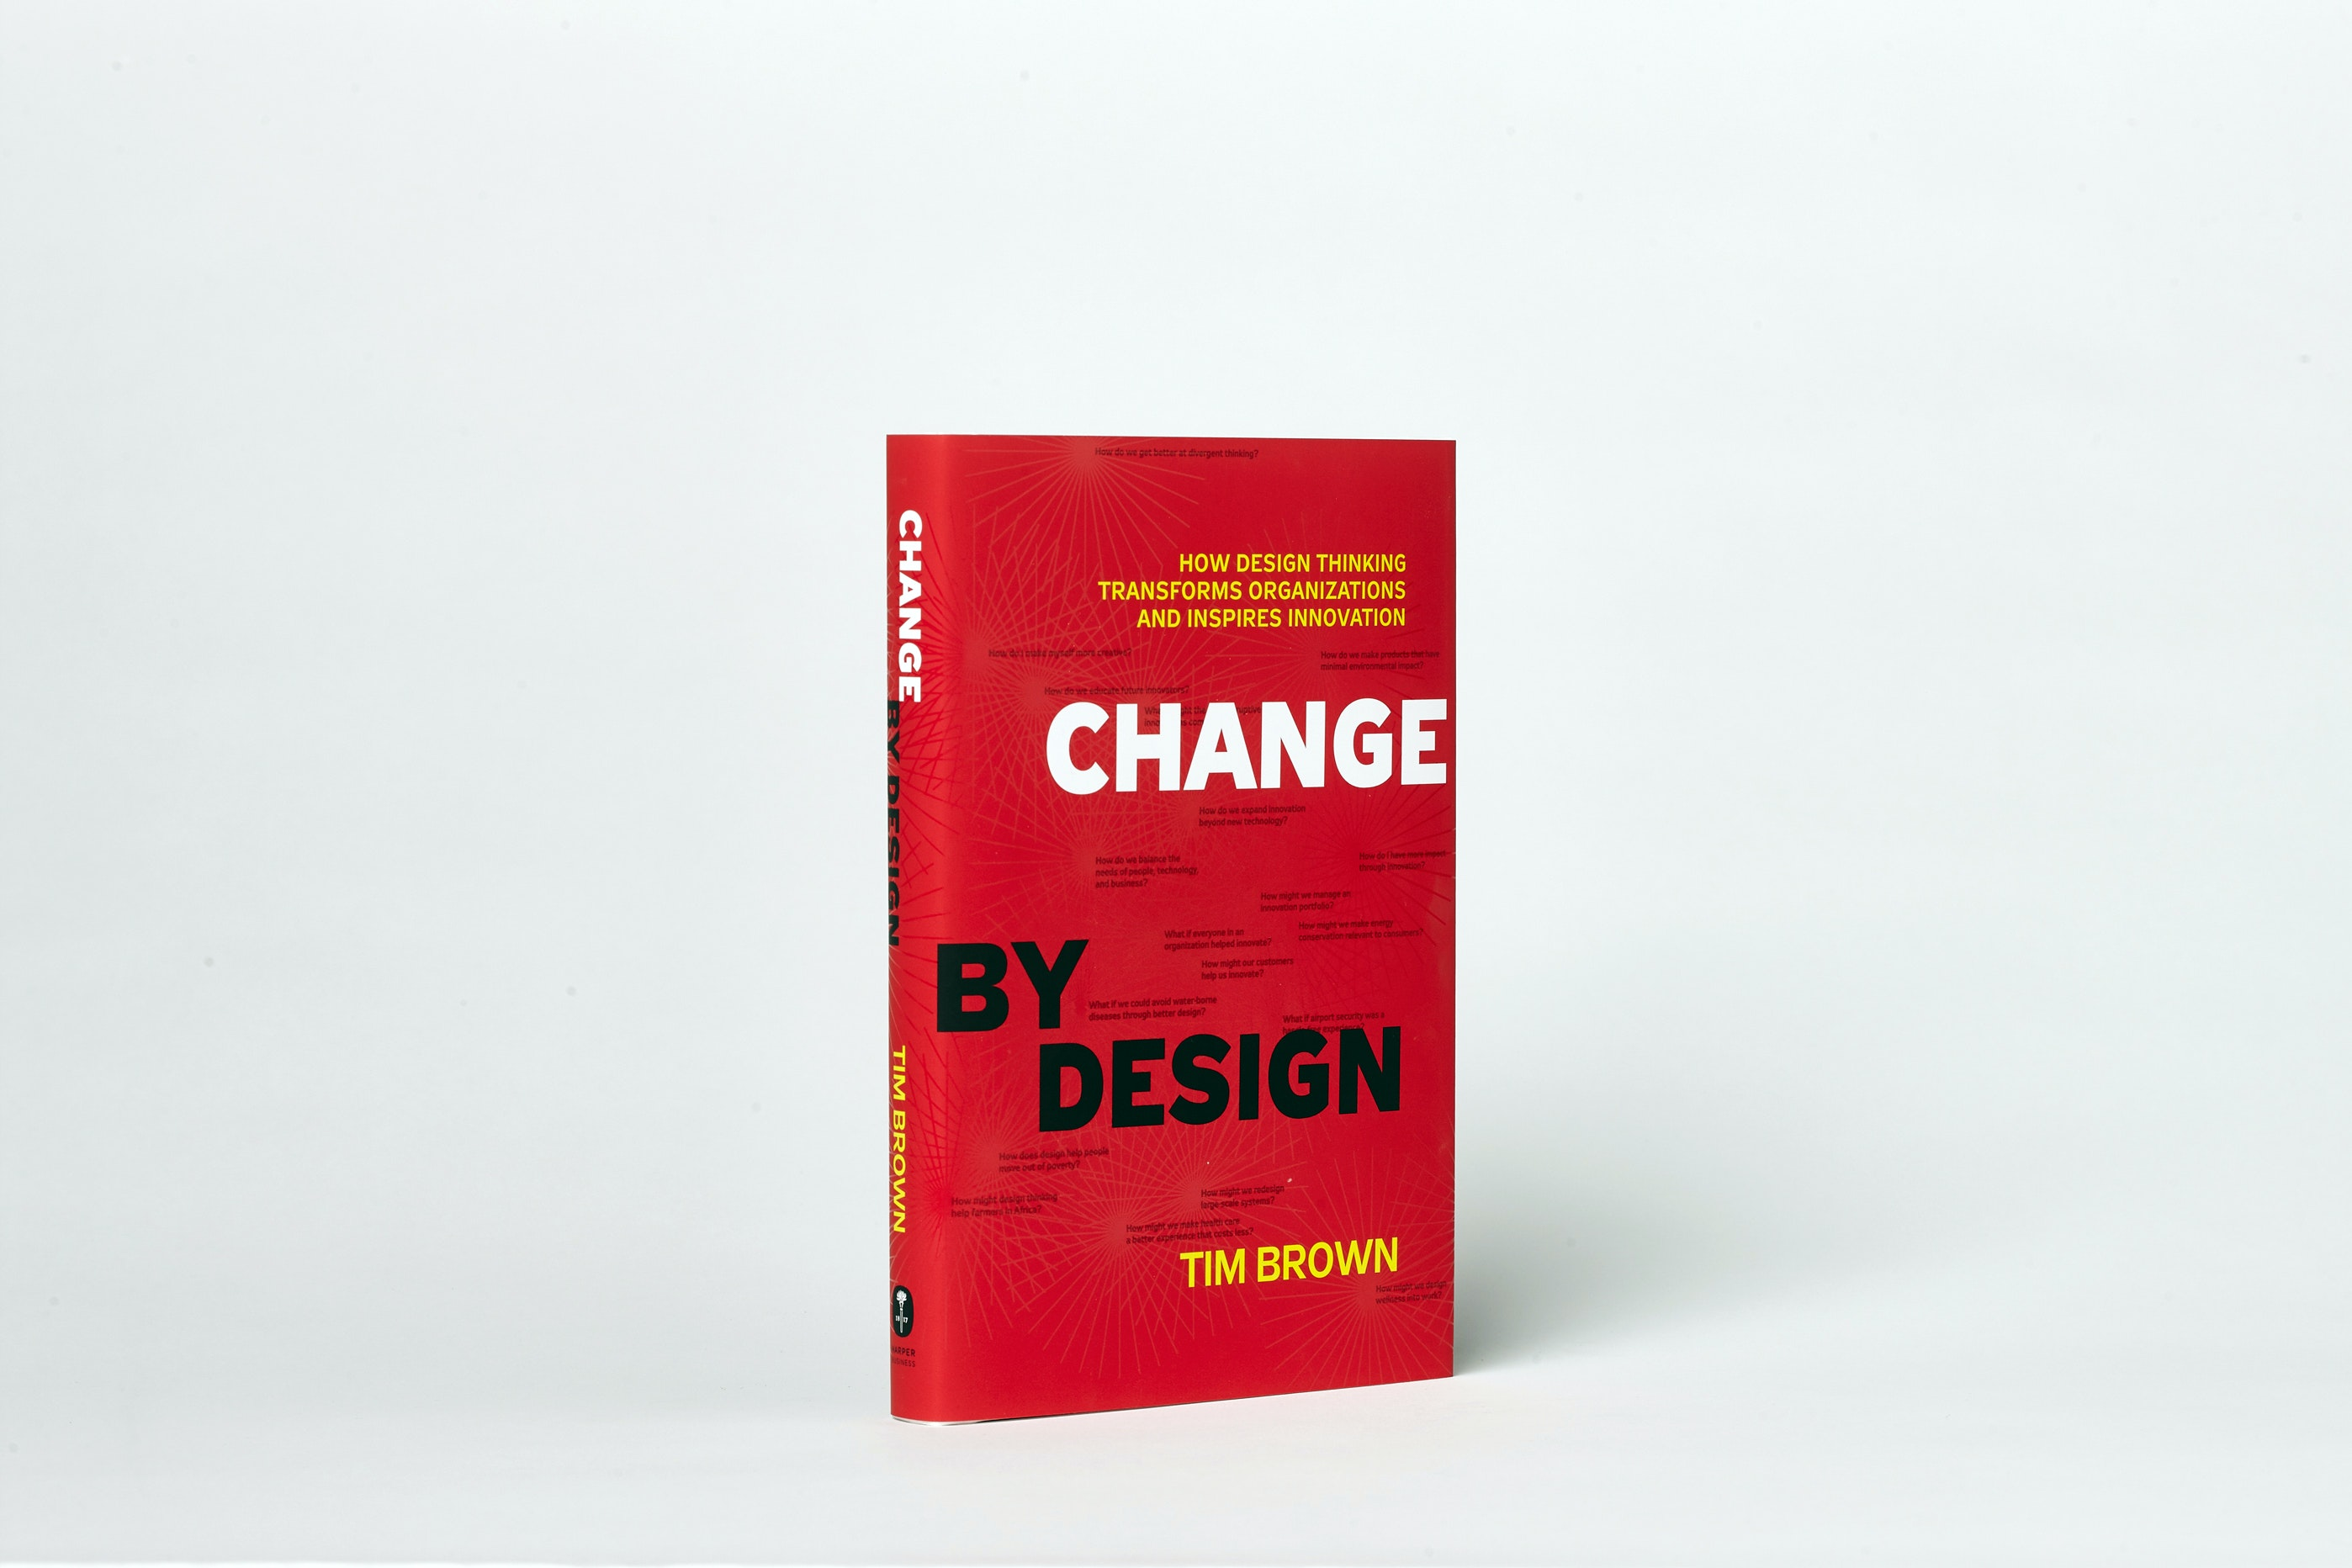 Change By Design Author Tim Brown on how design thinking transforms organizations and inspires innovations